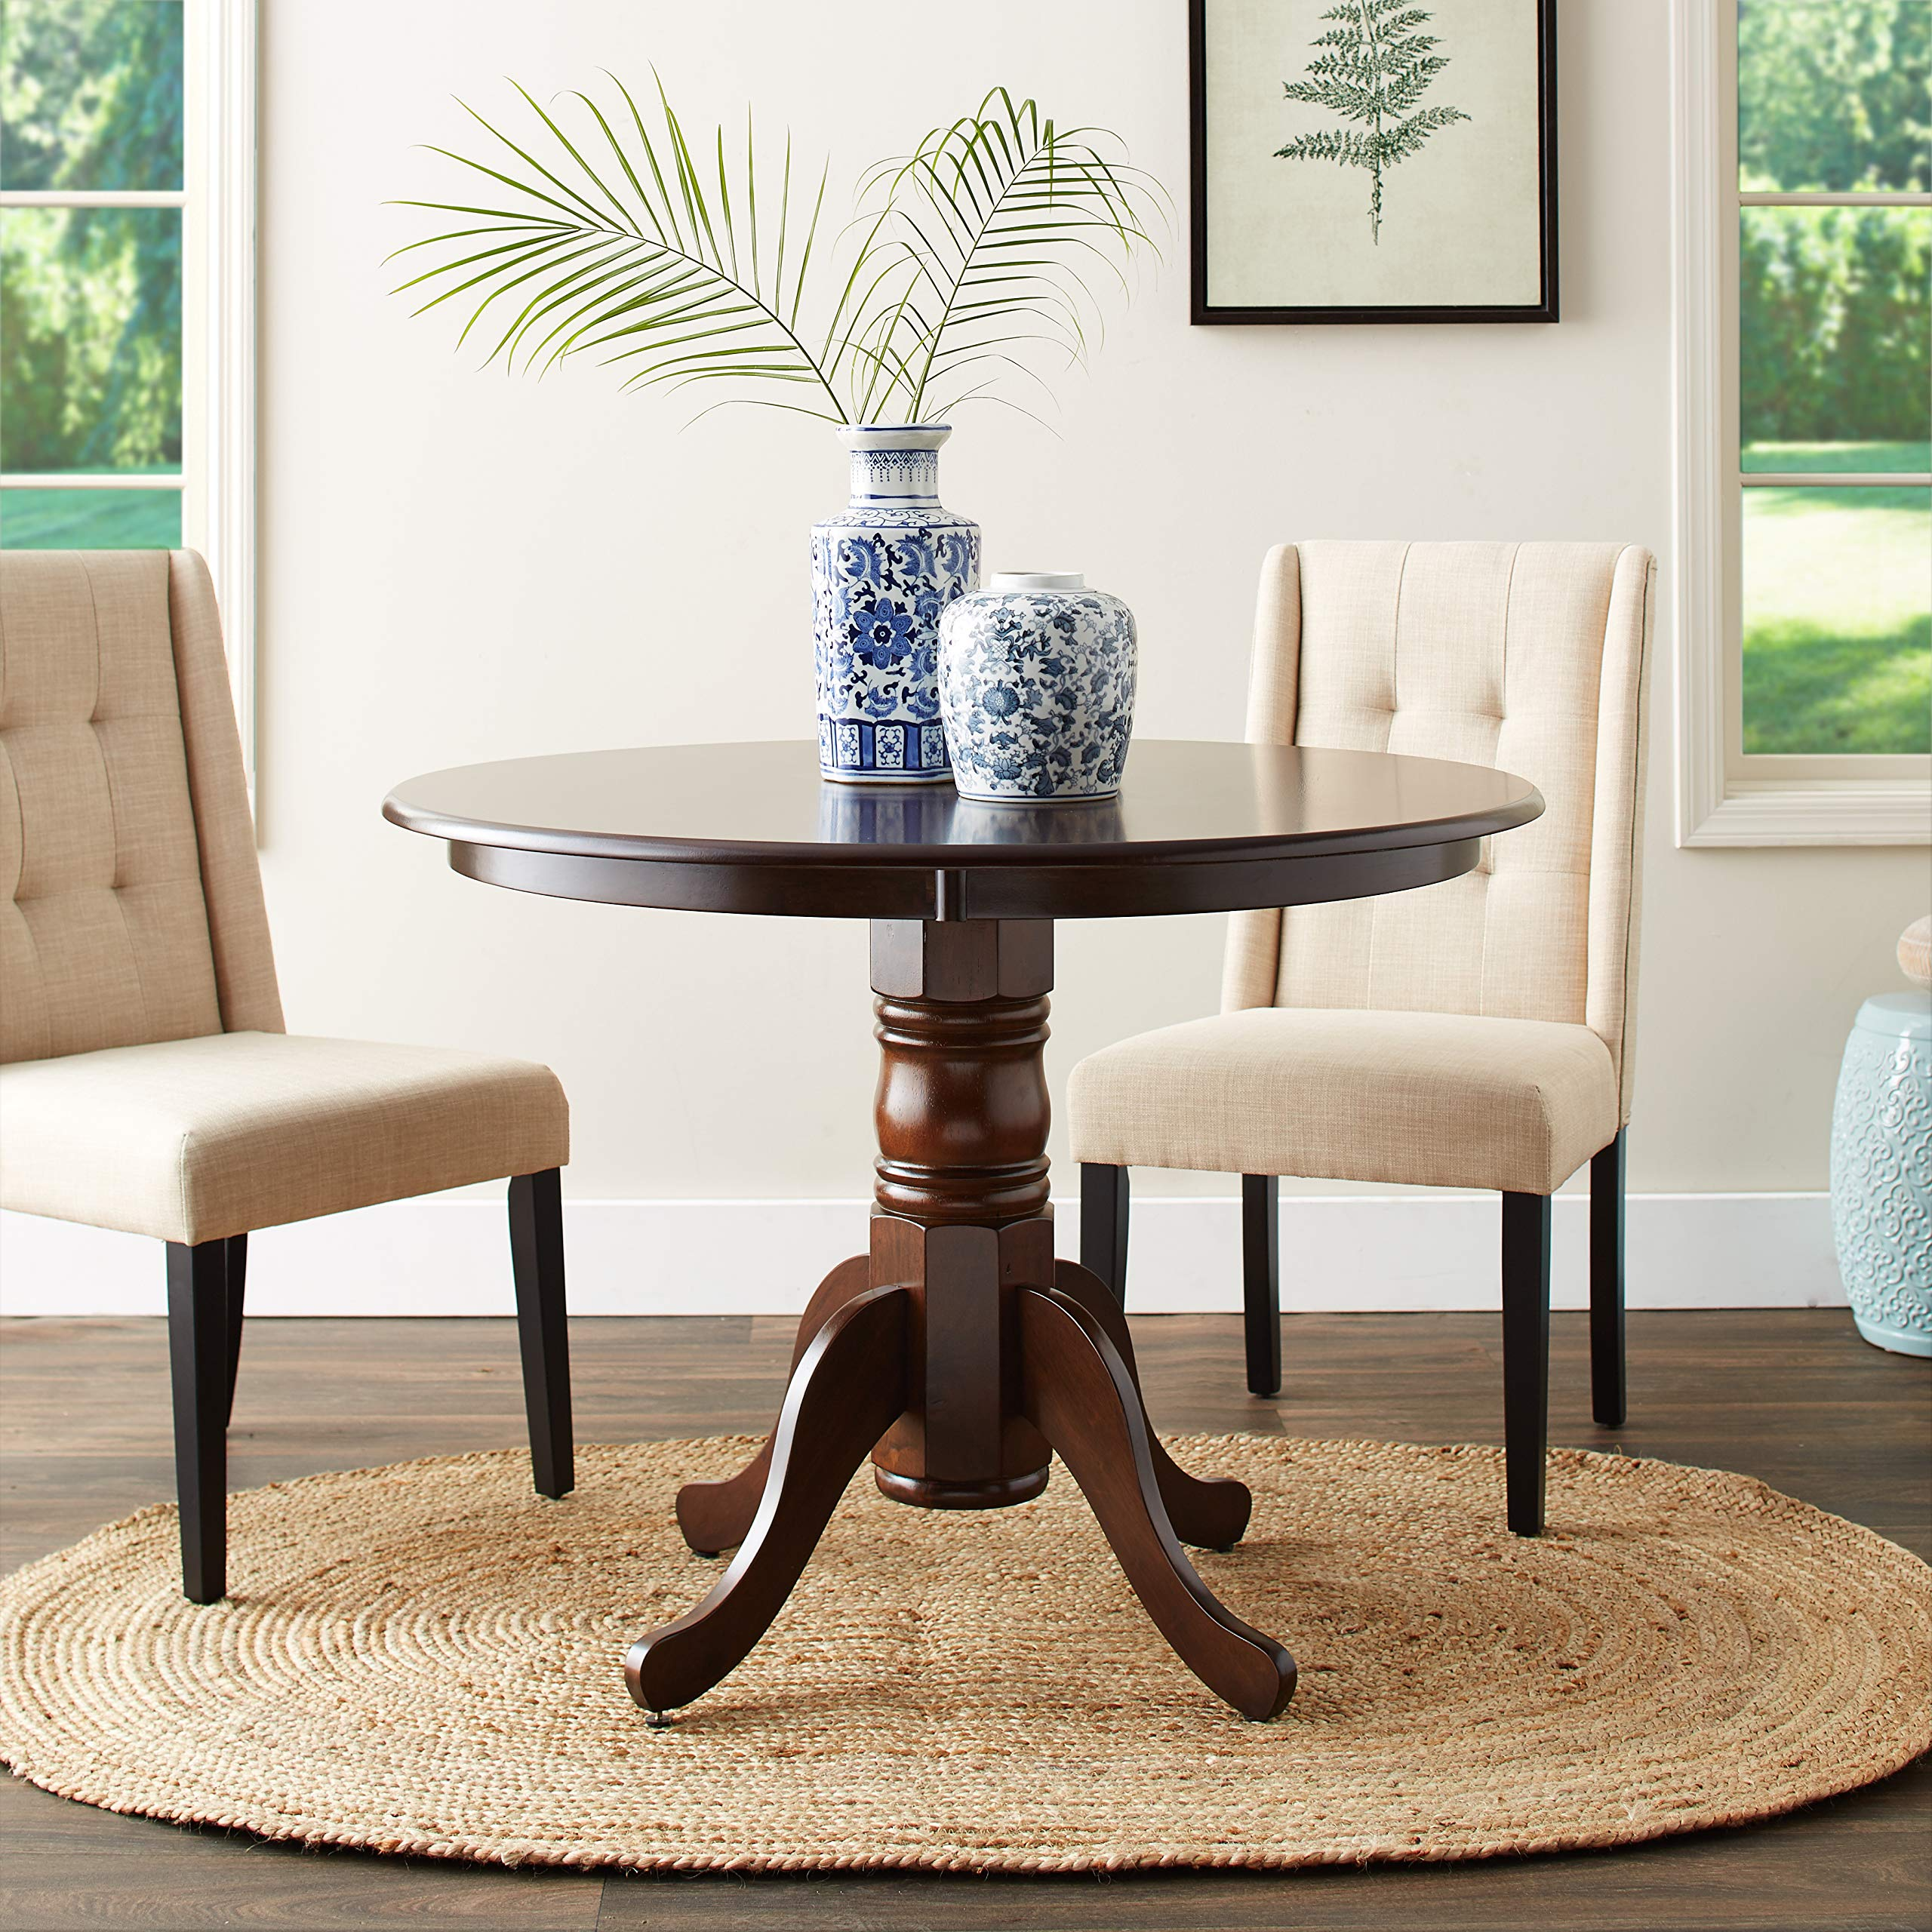 Brannan Round Single Pedestal Dining Table Cappuccino by Coaster Home Furnishings (Image #2)